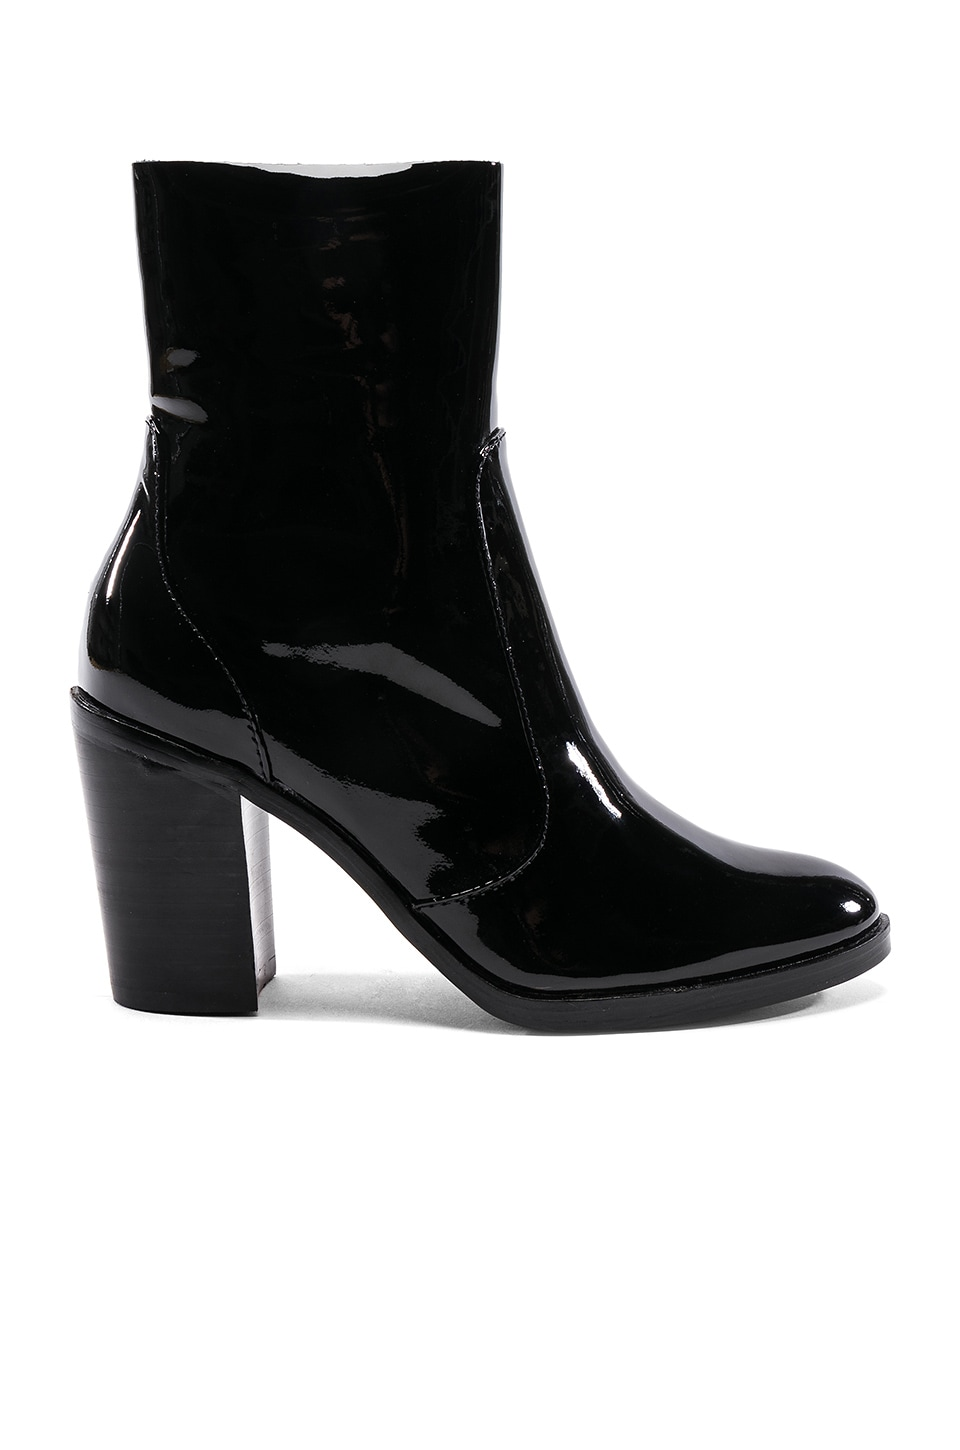 3ad83dac41d Splendid Roselyn Bootie in Black | REVOLVE